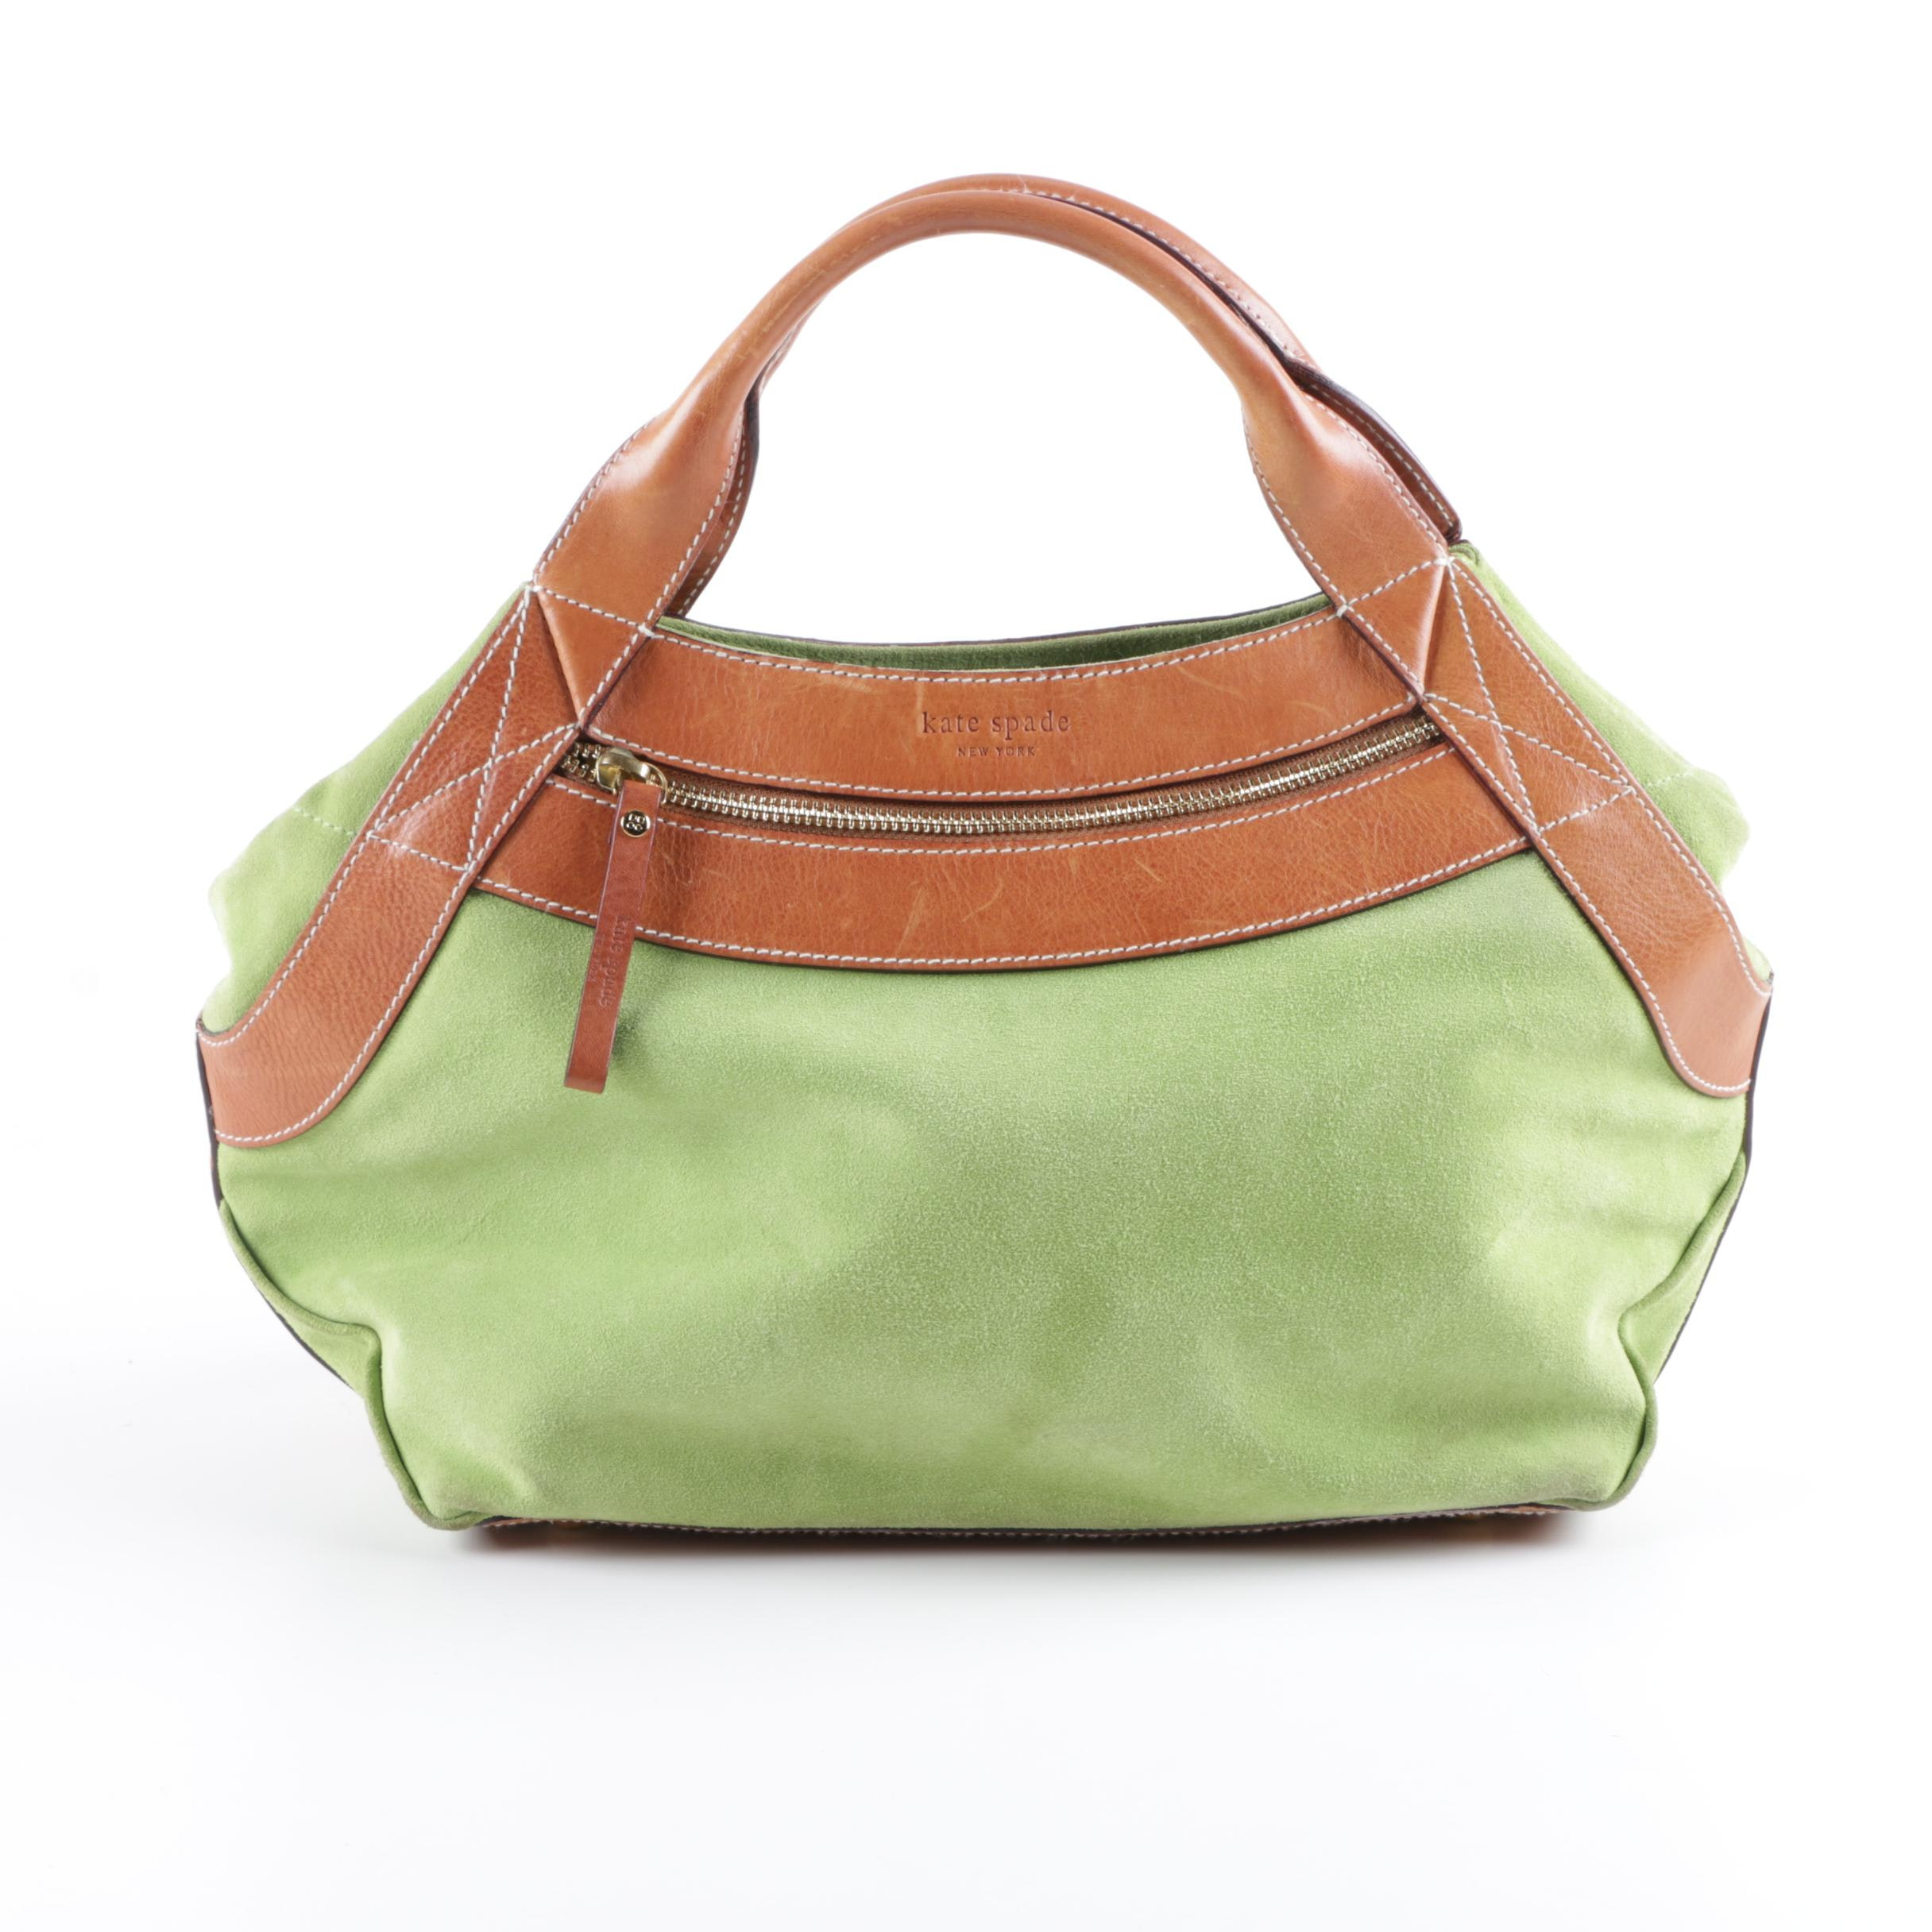 Kate Spade New York Lime Green Suede and Brown Leather Handbag